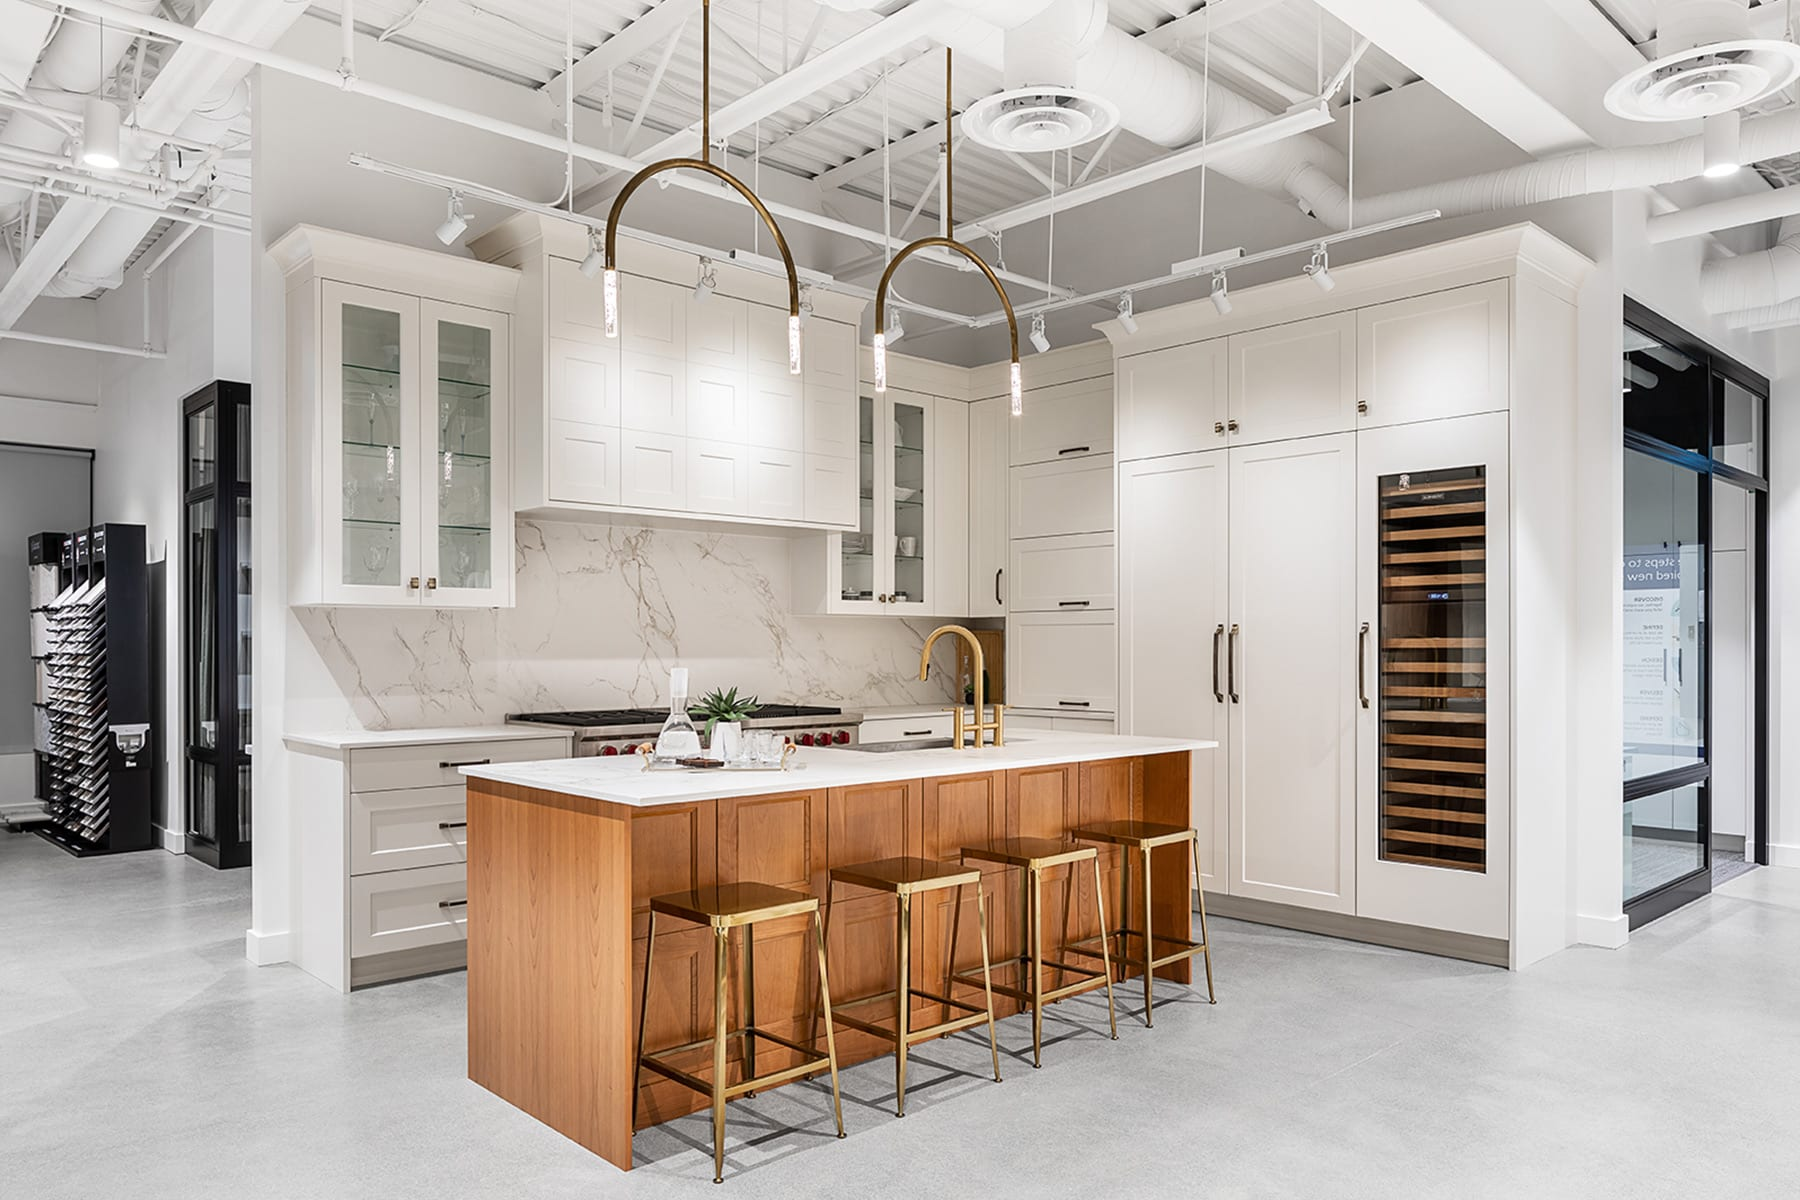 Full interior demolition and fit-out at KAD's new Richmond showroom. High grade kitchen vignette in a sleek white, gold palette